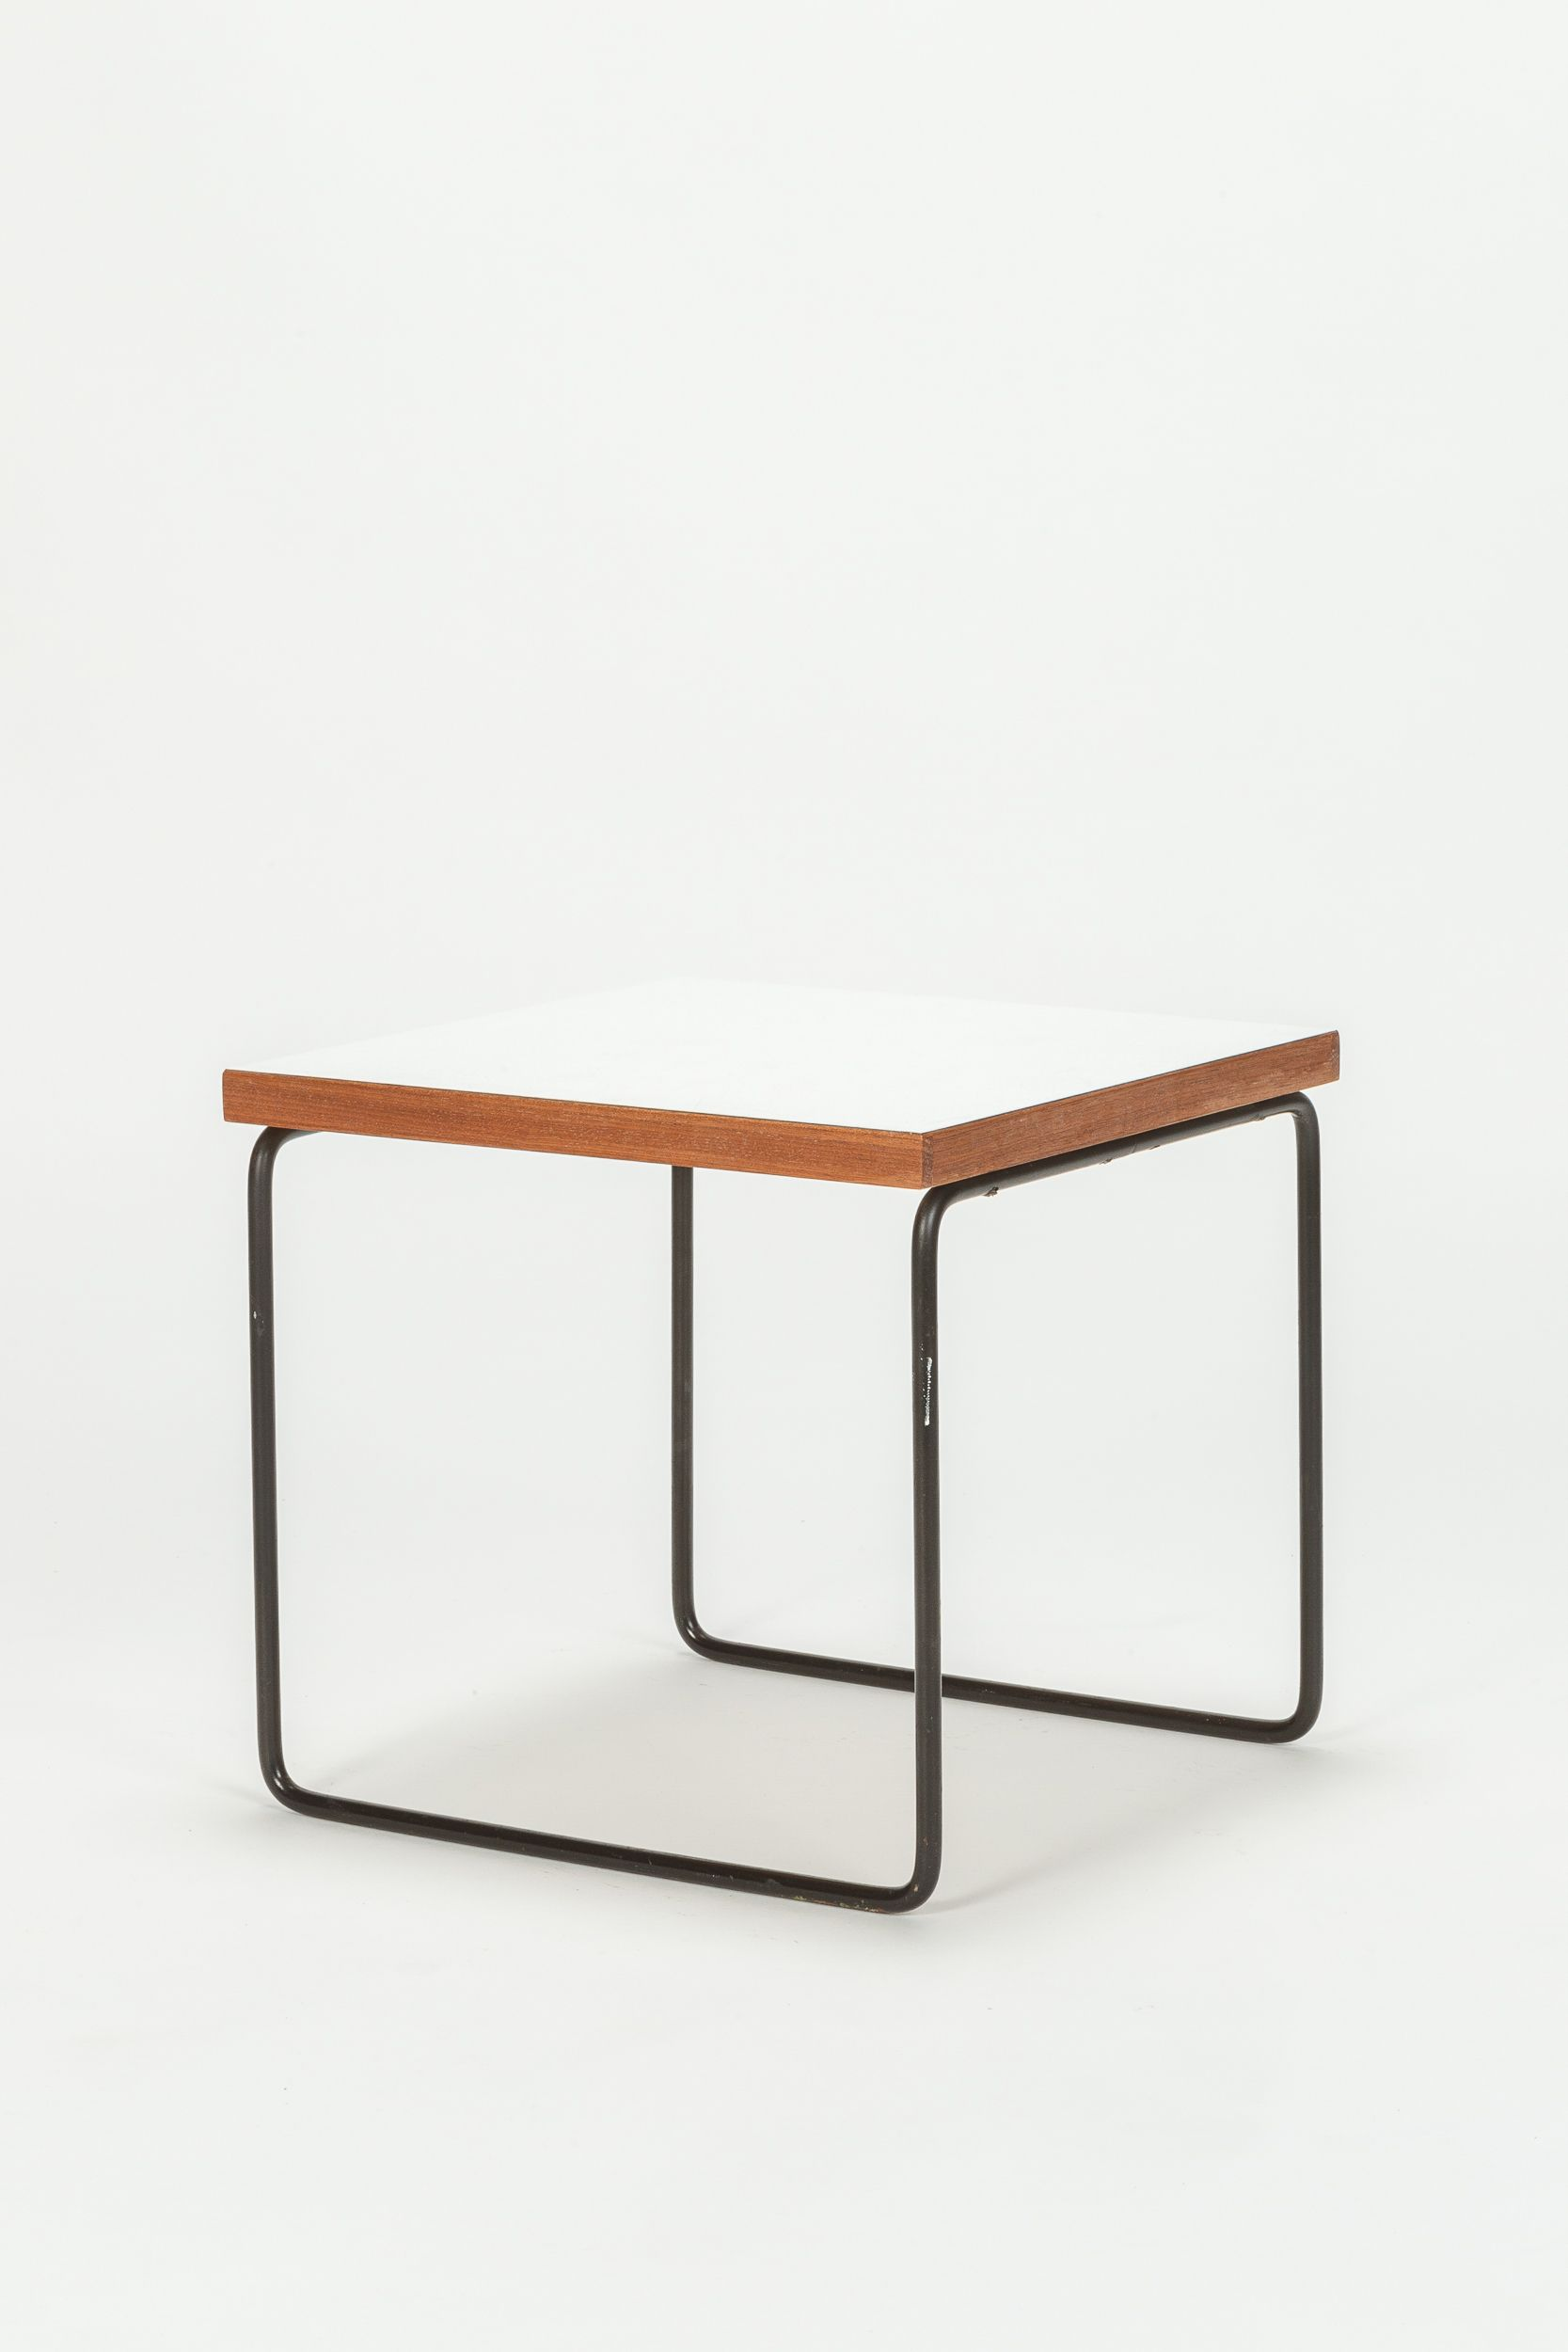 Steiner Gartentisch Pierre Guariche Side Table New Arrivals At Okay Art Formica